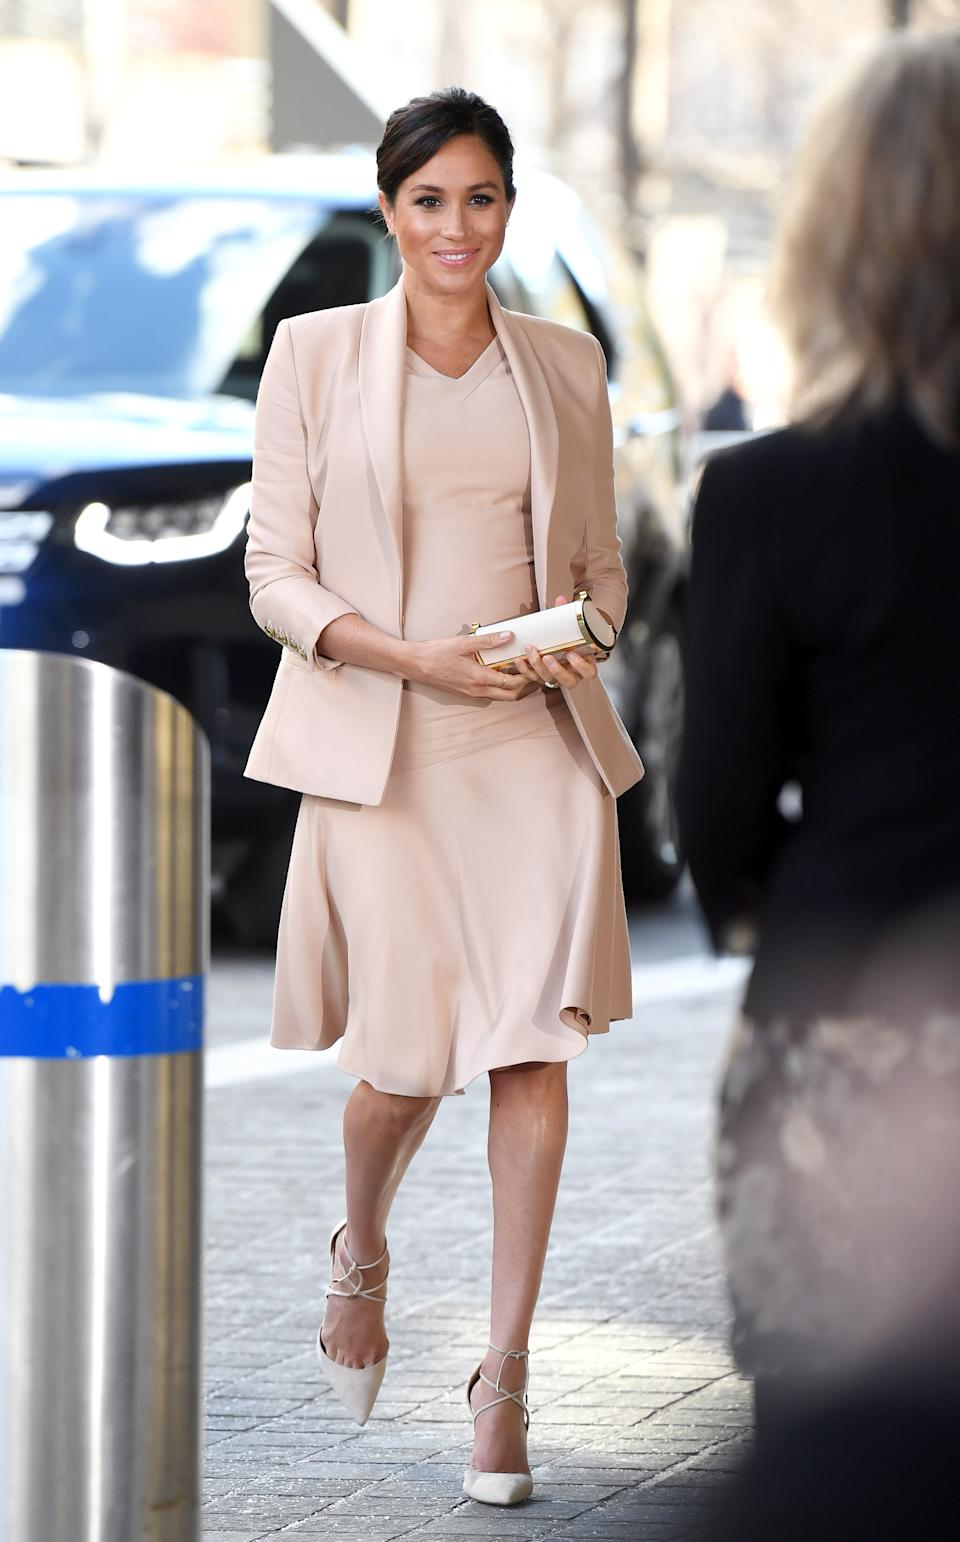 Demonstrating how to wear SS19's biggest trend, the royal wore a powder pink dress and co-ordinating blazer by Brandon Maxwell. To accessorise the tonal ensemble, the royal chose a Carolina Herrera clutch bag with lace-up Aquazurra heels - which she first wore on her engagement photo call. <em>[Photo: Getty]</em>